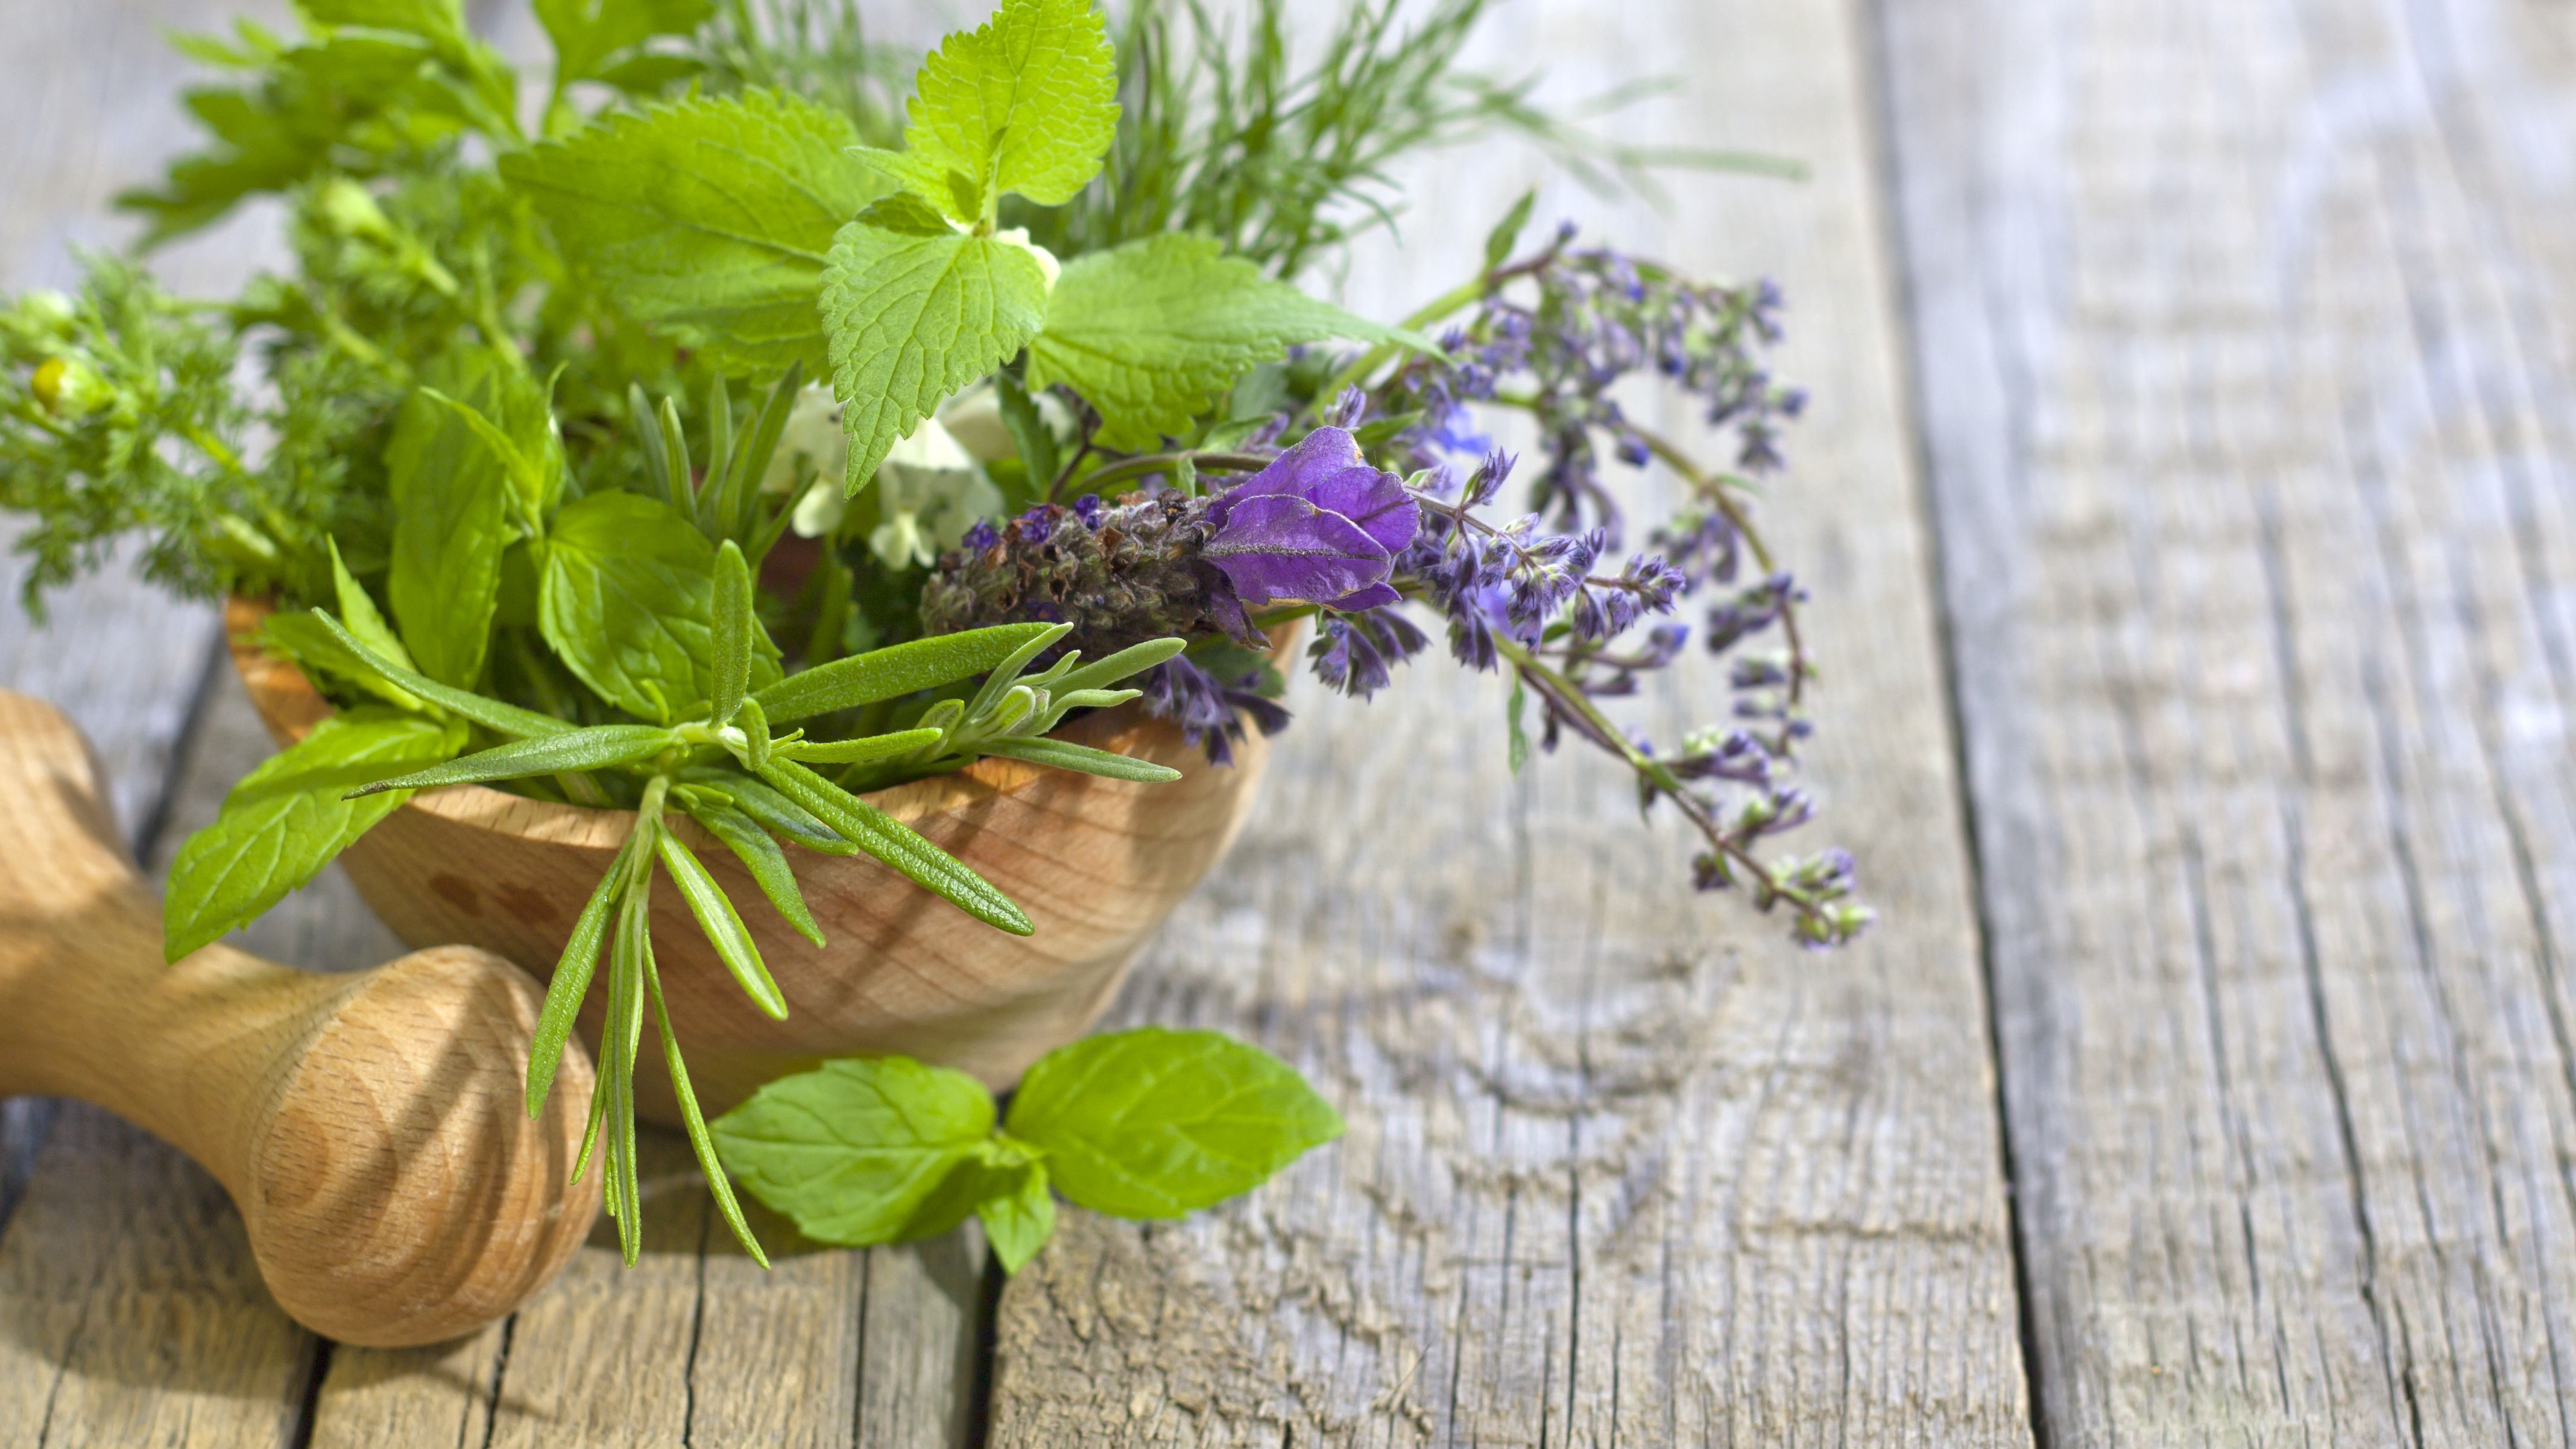 Pest-repelling plant buying guide